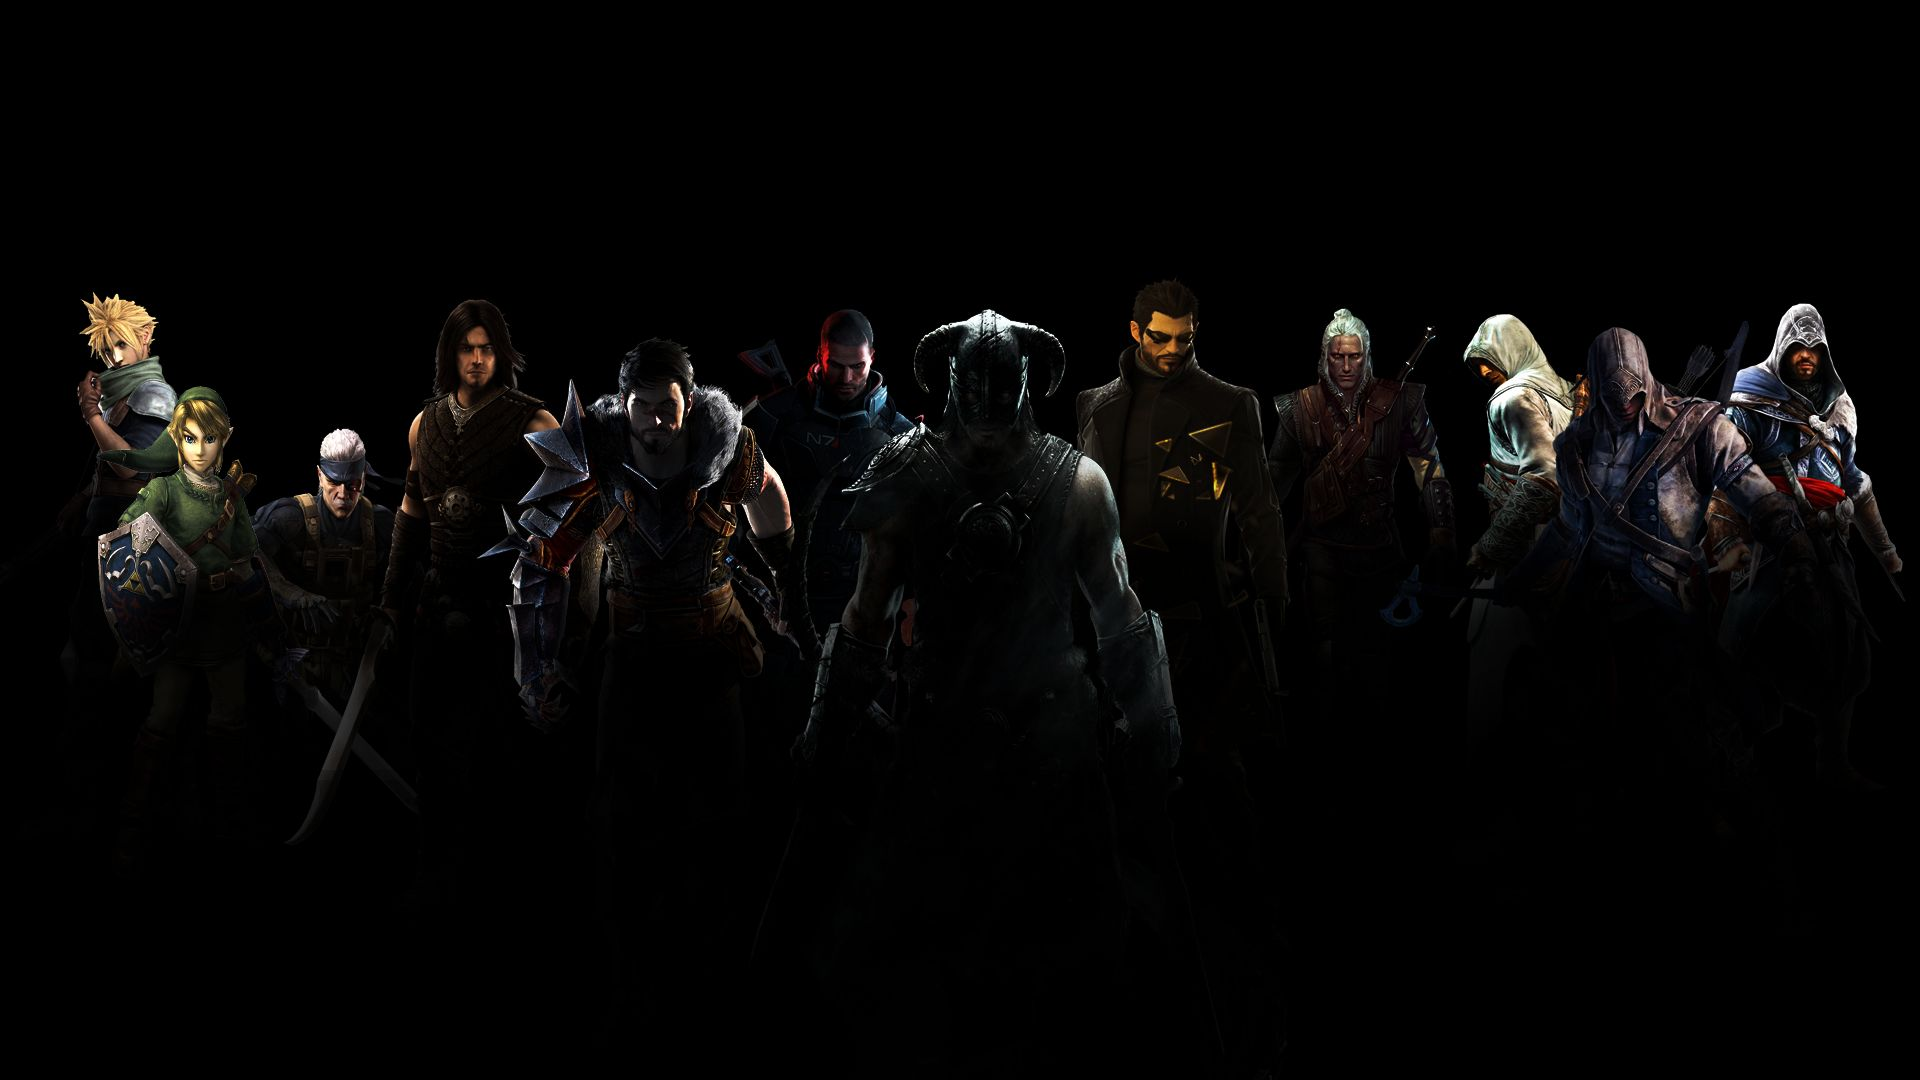 HD Wallpapers Video Game 1920x1080